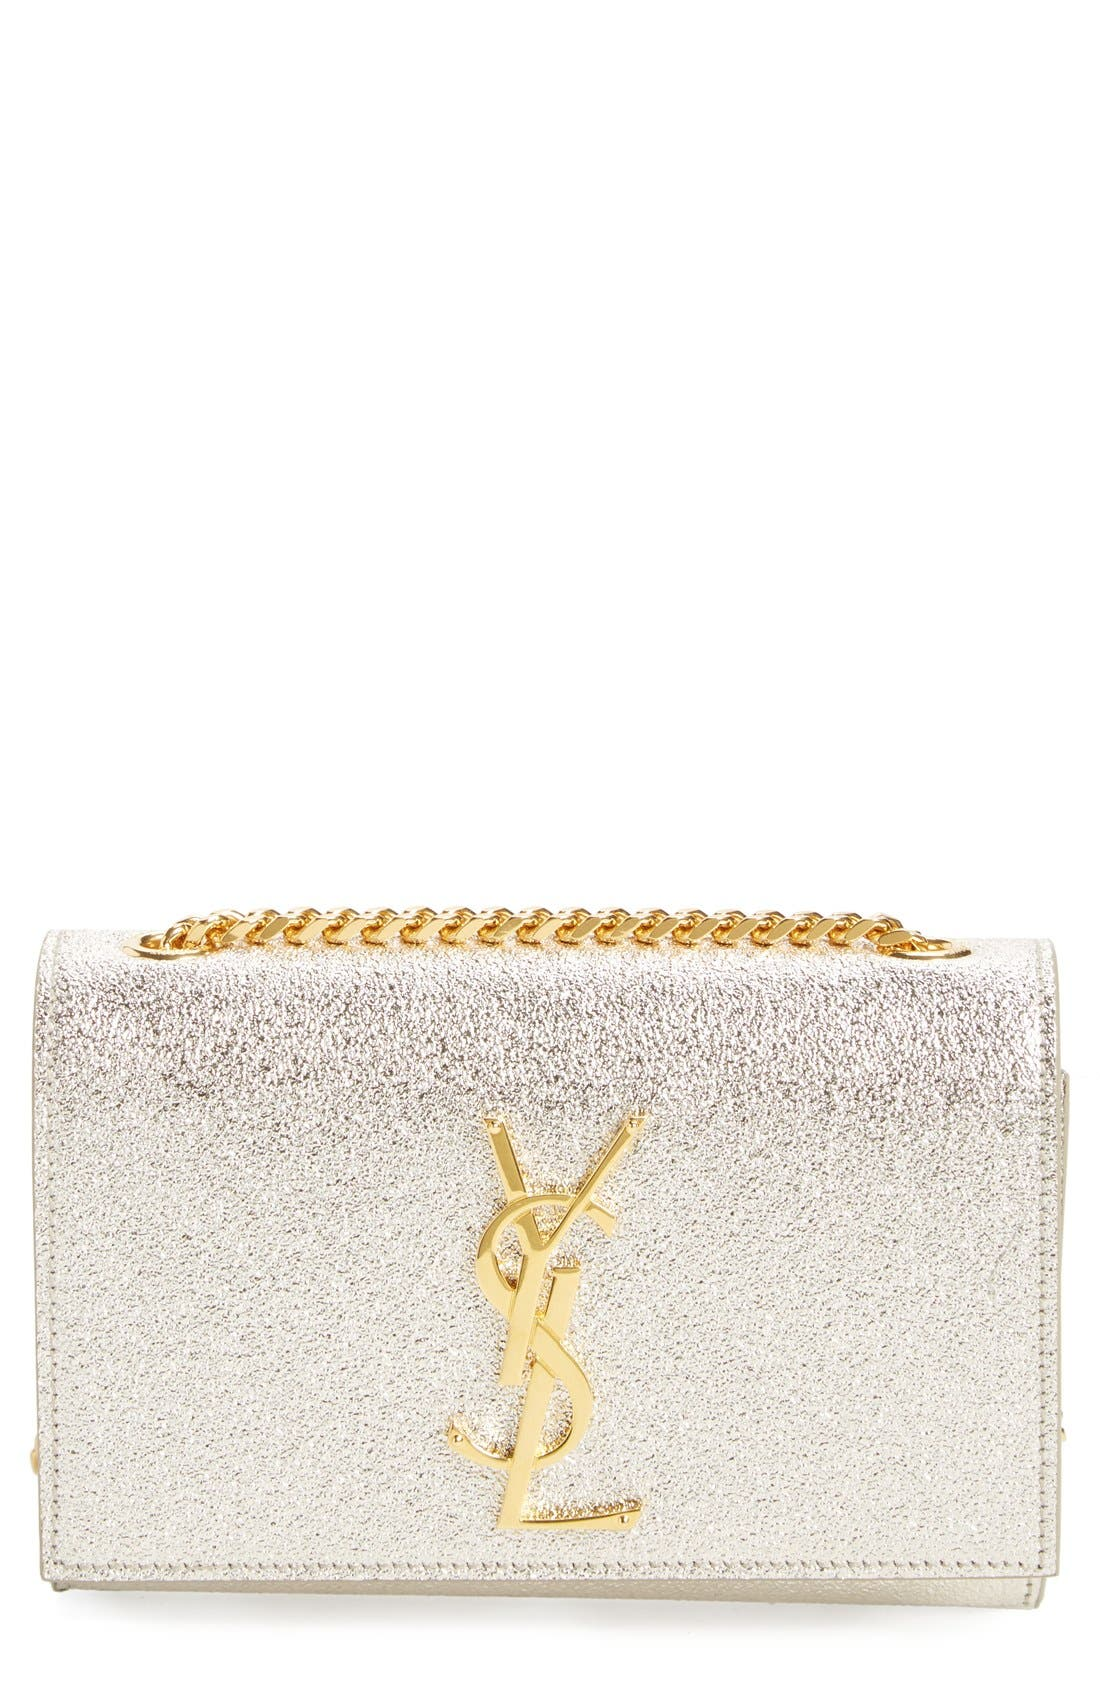 SAINT LAURENT Small Monogram Crossbody Bag